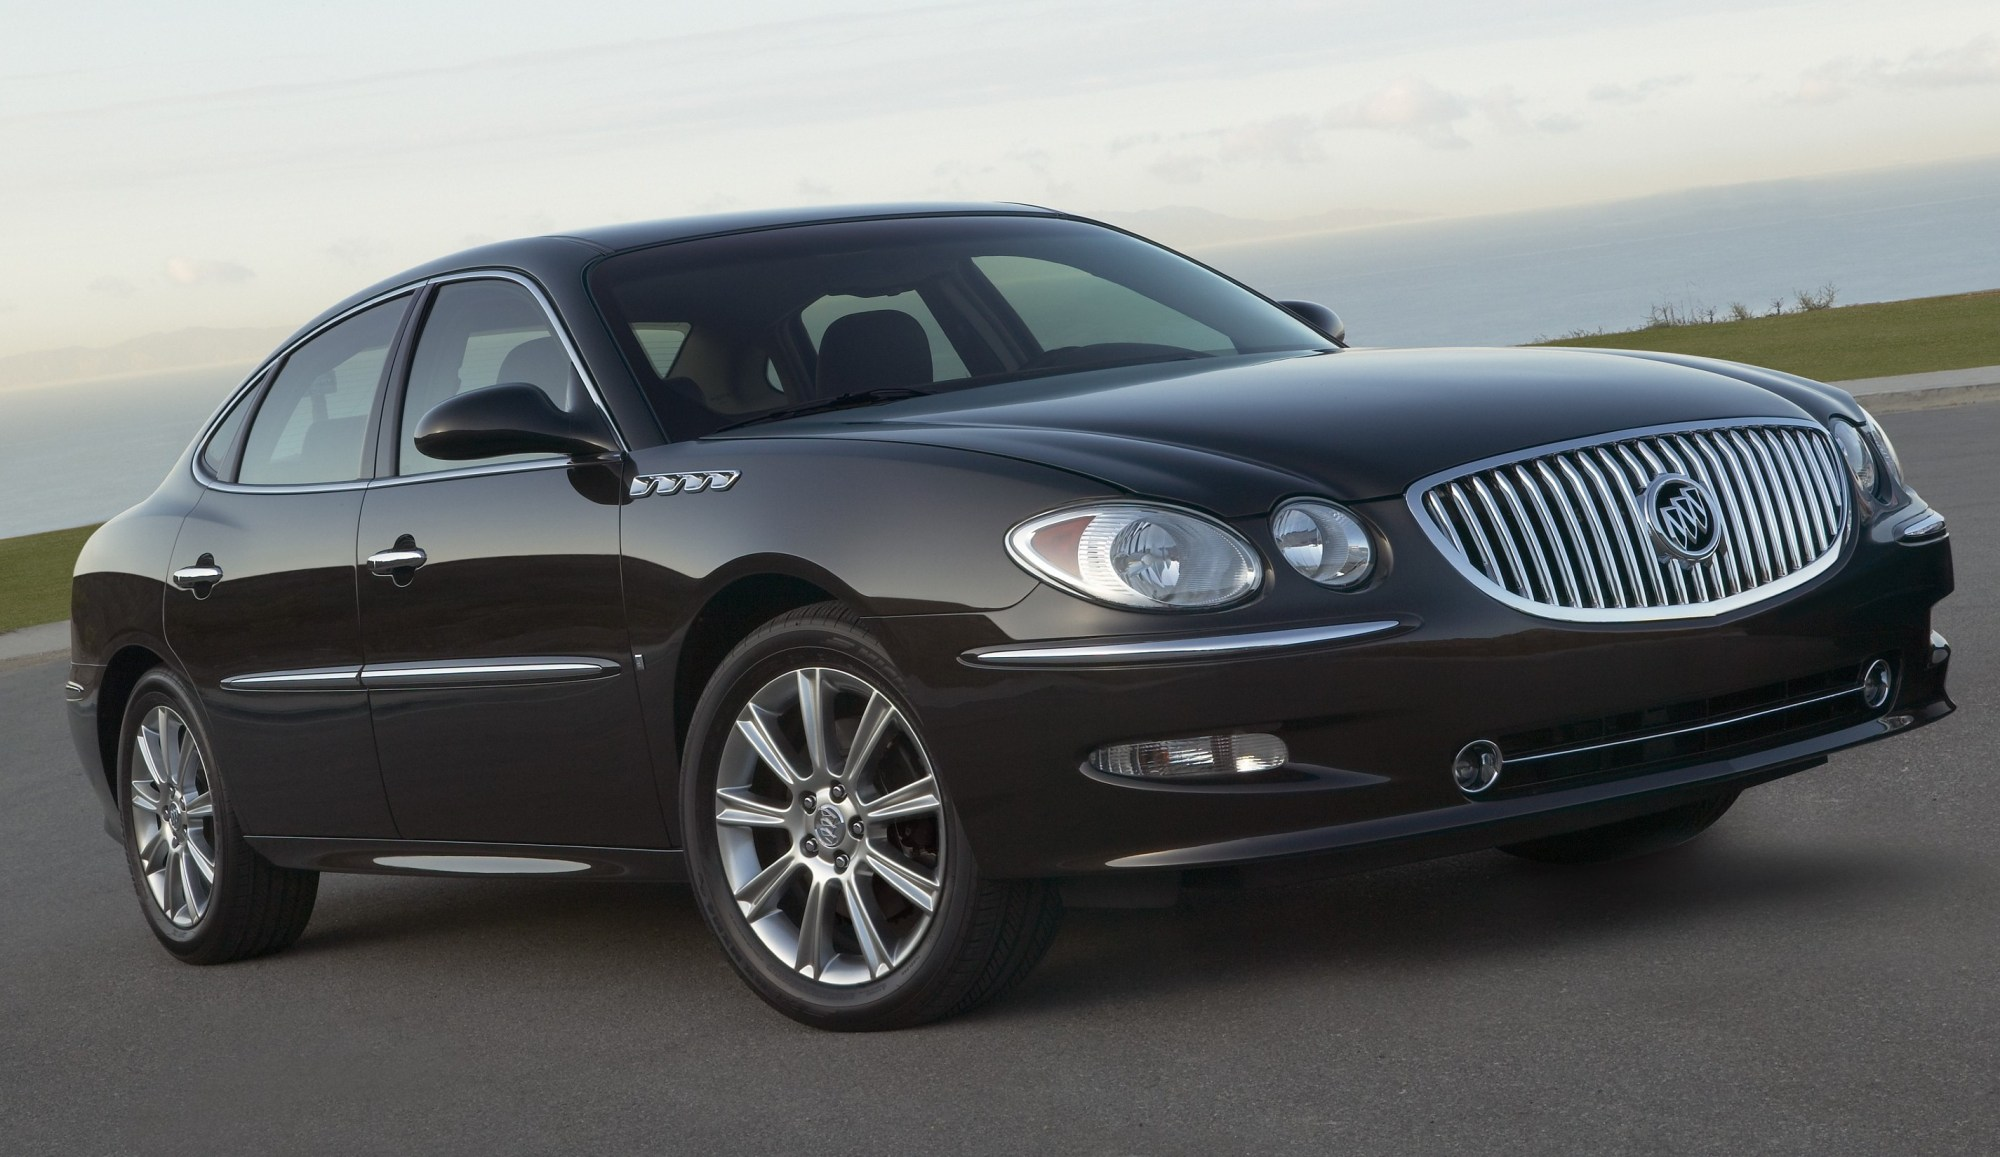 hight resolution of 2008 buick lacrosse super 002 0270